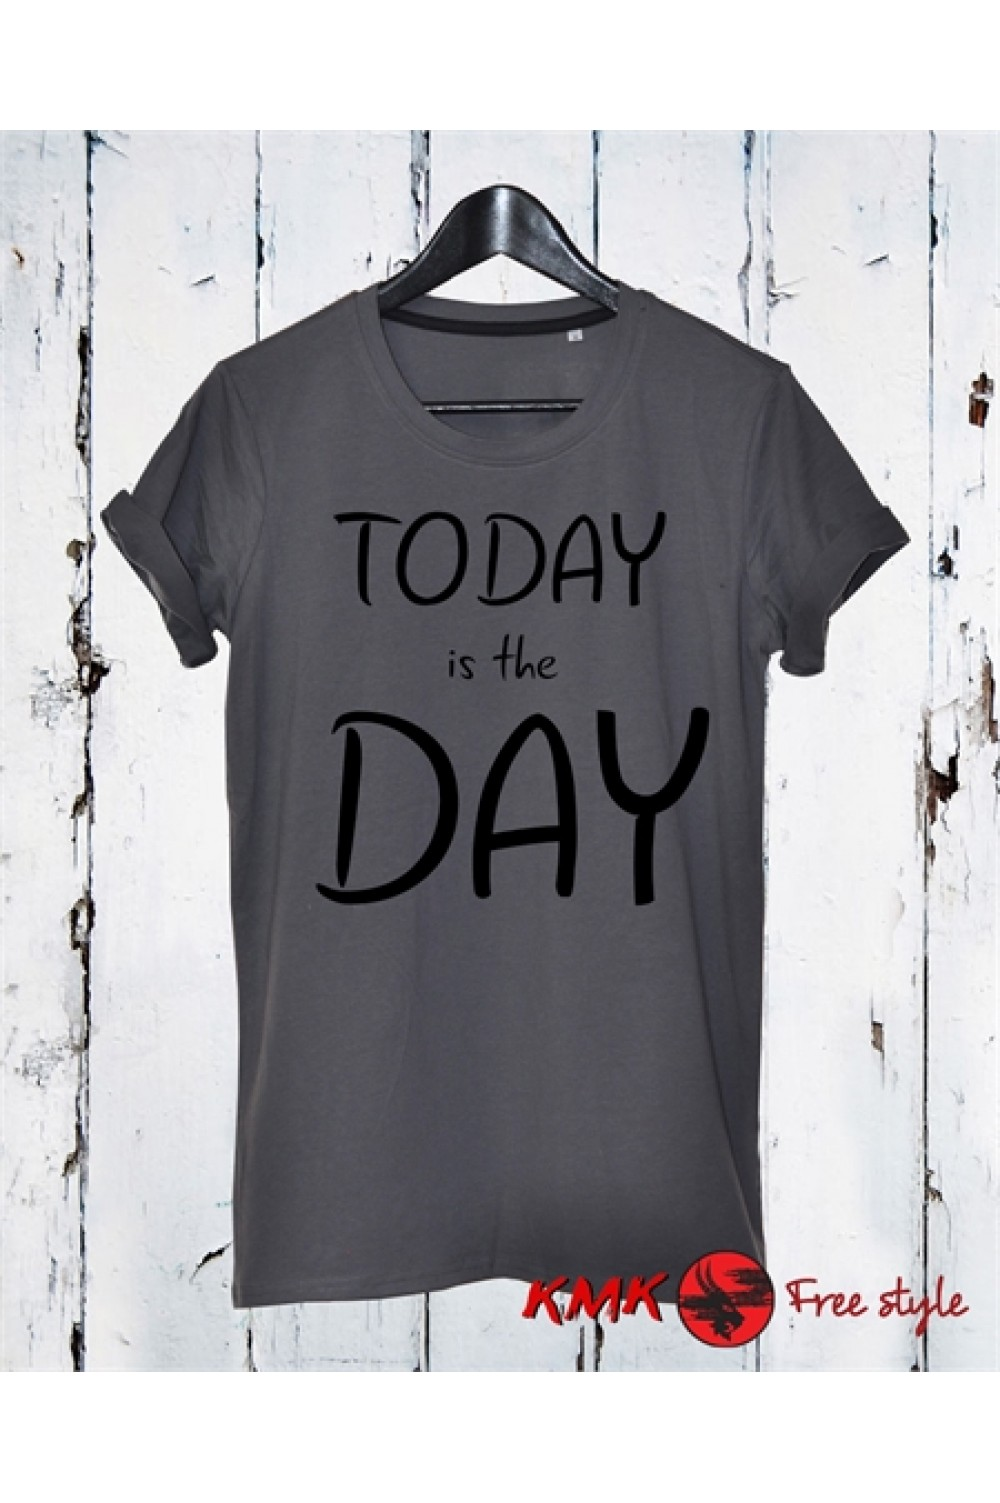 Today is the day Printed T shirt | Motivation T-shirt | Sports Tee